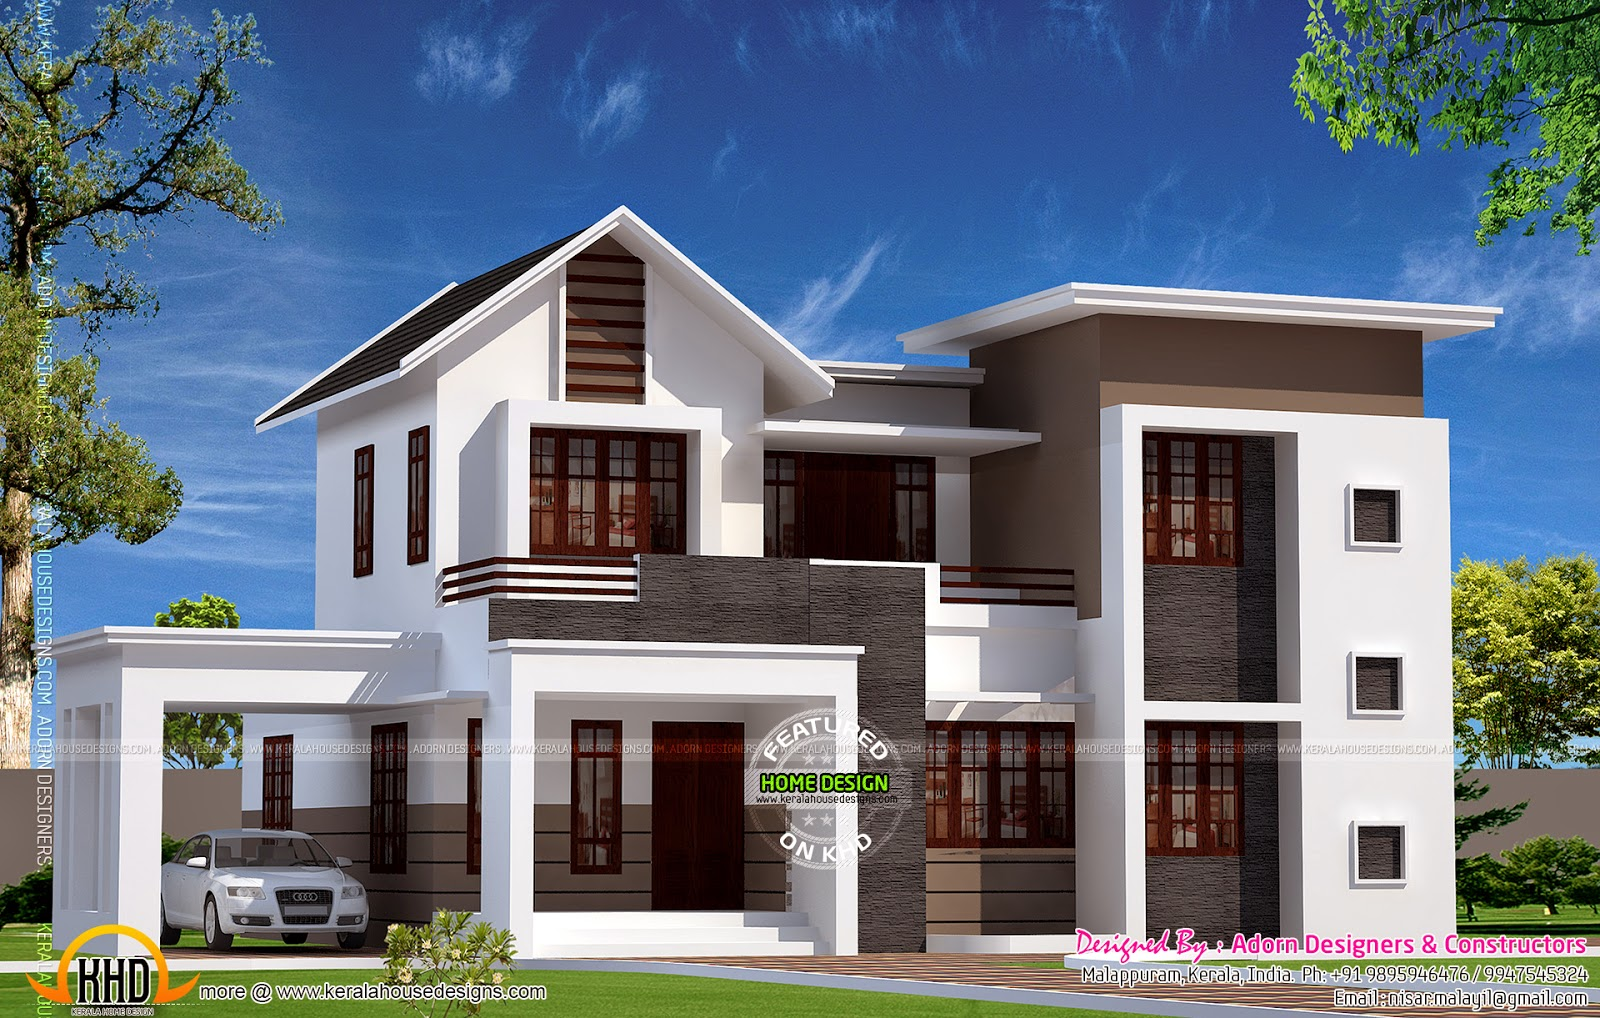 New house design in 1900 sq feet kerala home design and for Latest house decorating ideas